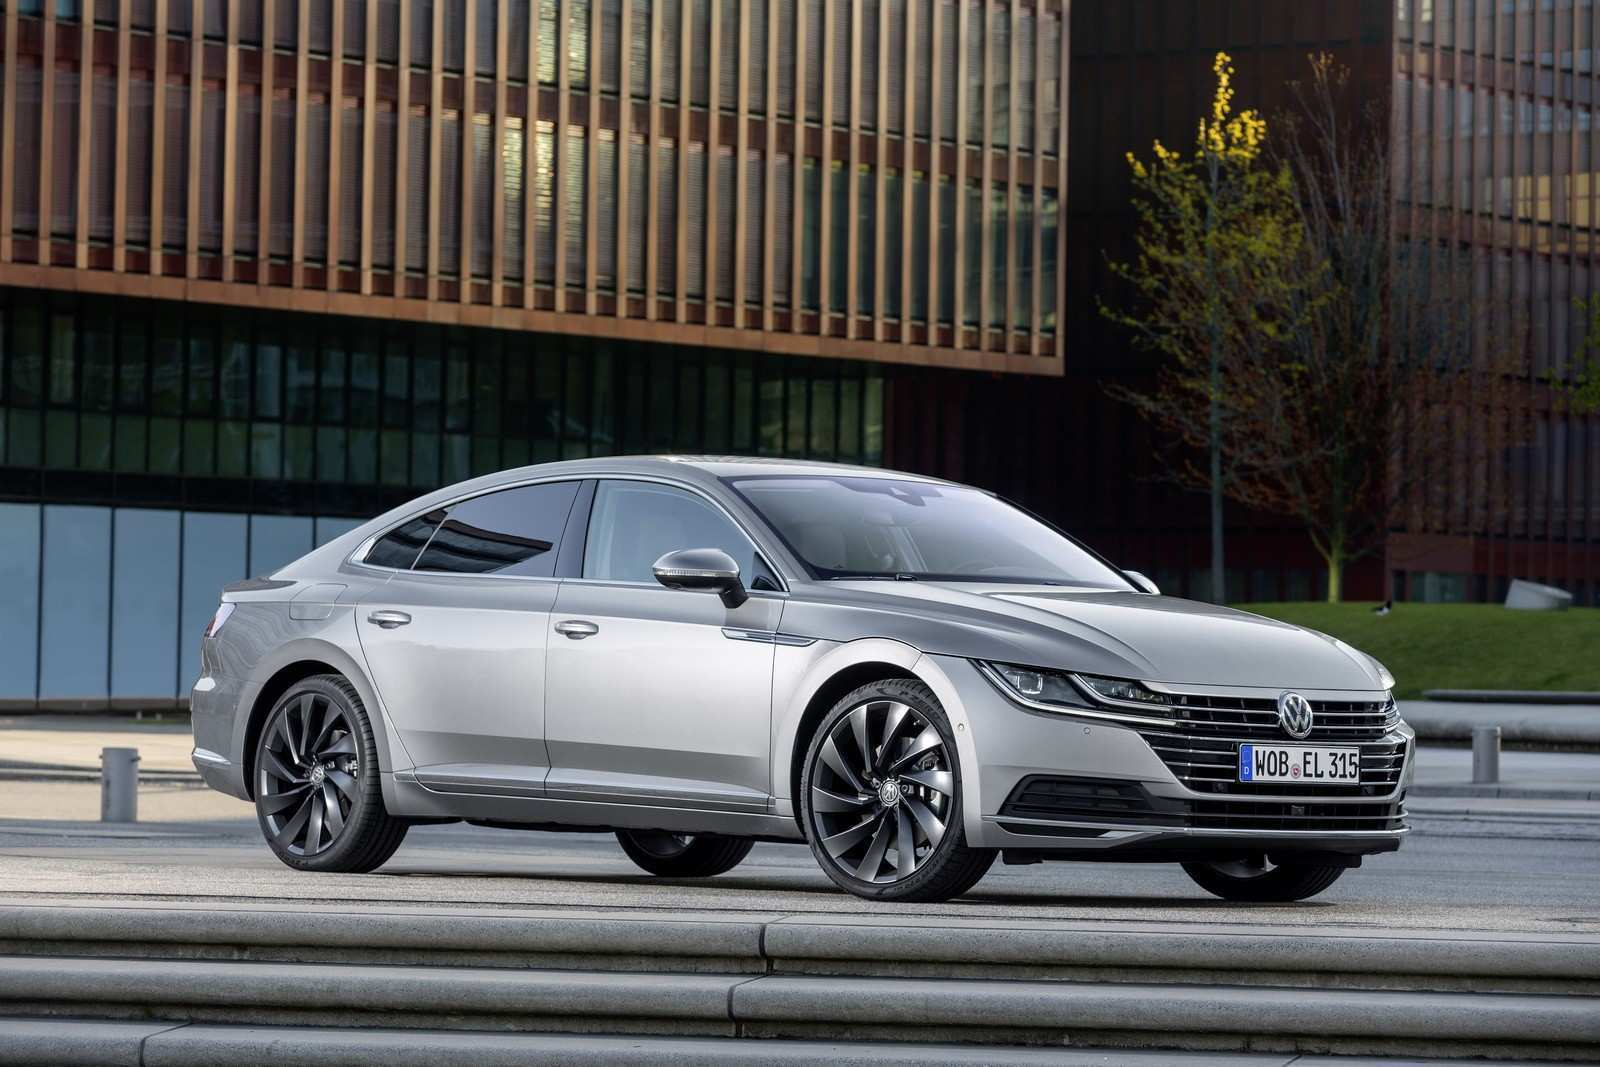 55 The Best Arteon Vw 2019 Exterior